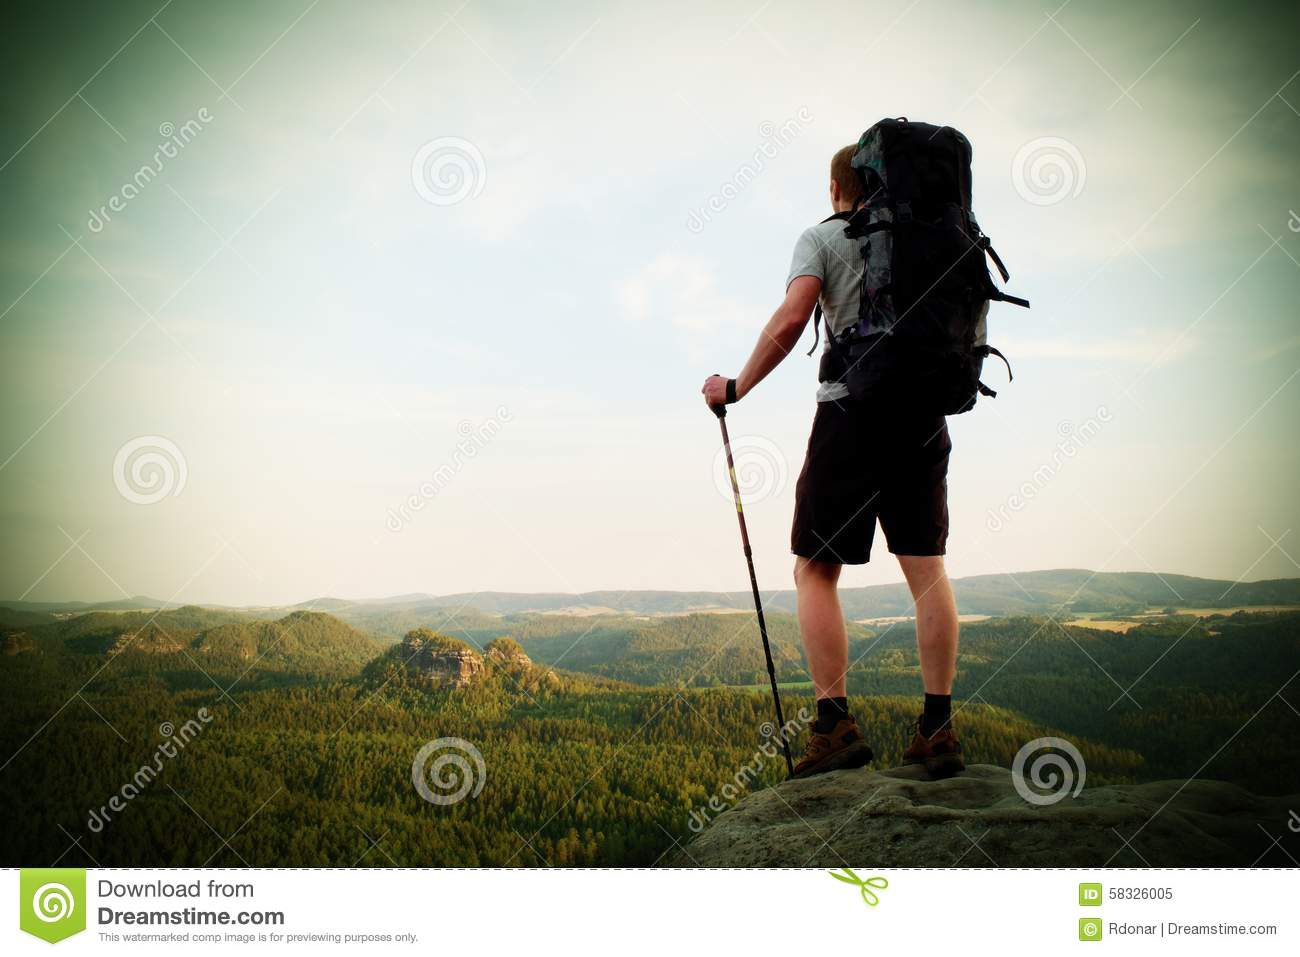 Tall backpacker with poles in hand. Sunny summer evenng in rocky mountains. Hiker with big backpack stand on rocky view point